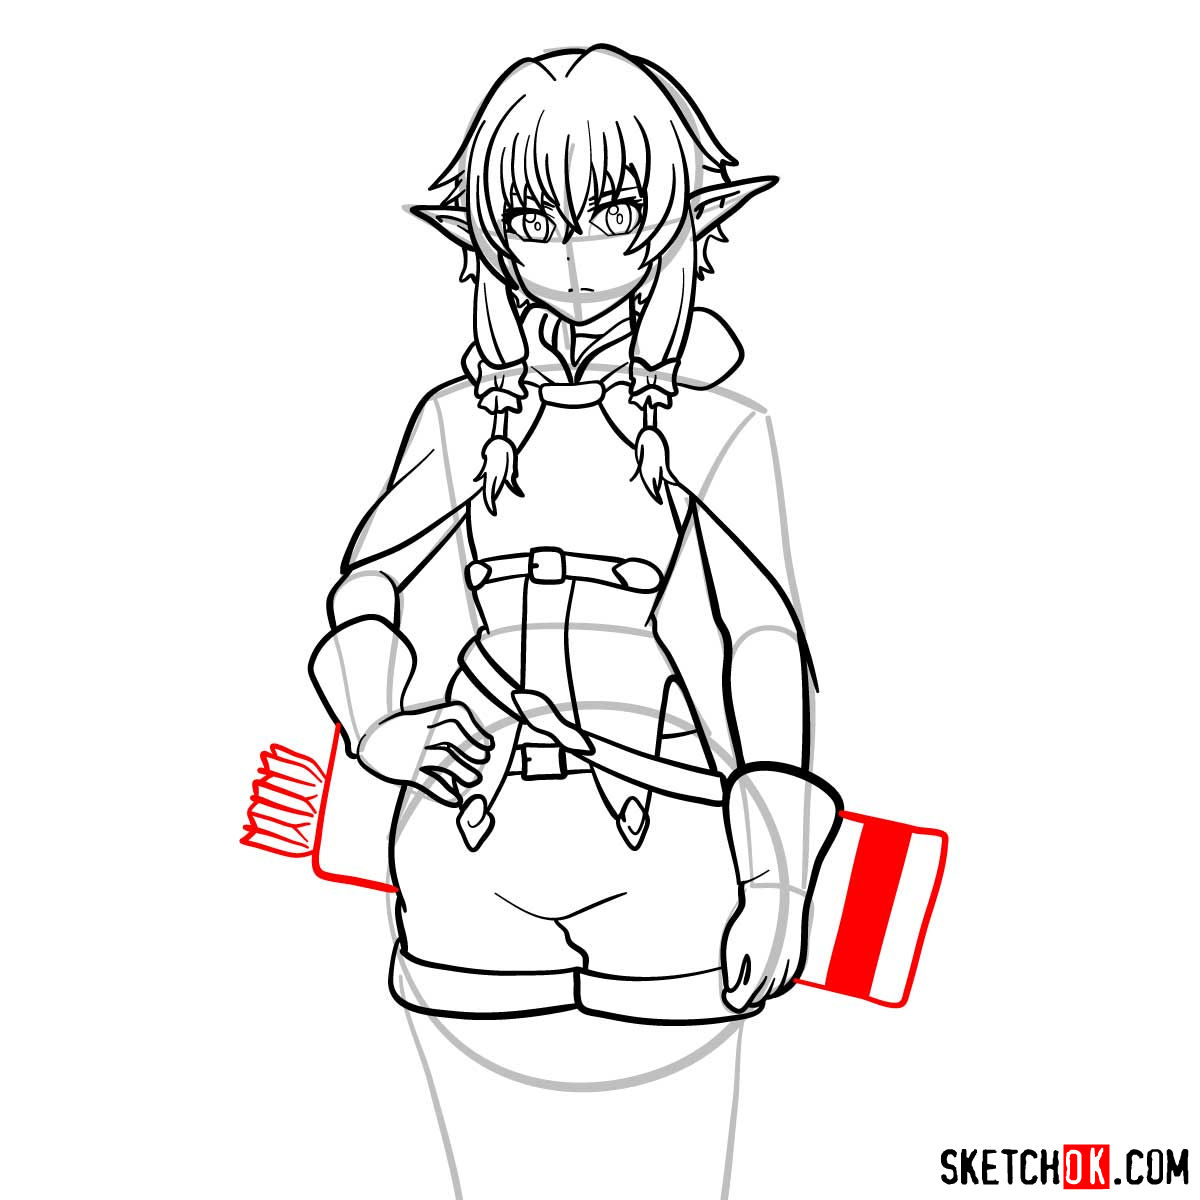 20 steps drawing tutorial of High Elf Archer (Goblin Slayer) - step 14